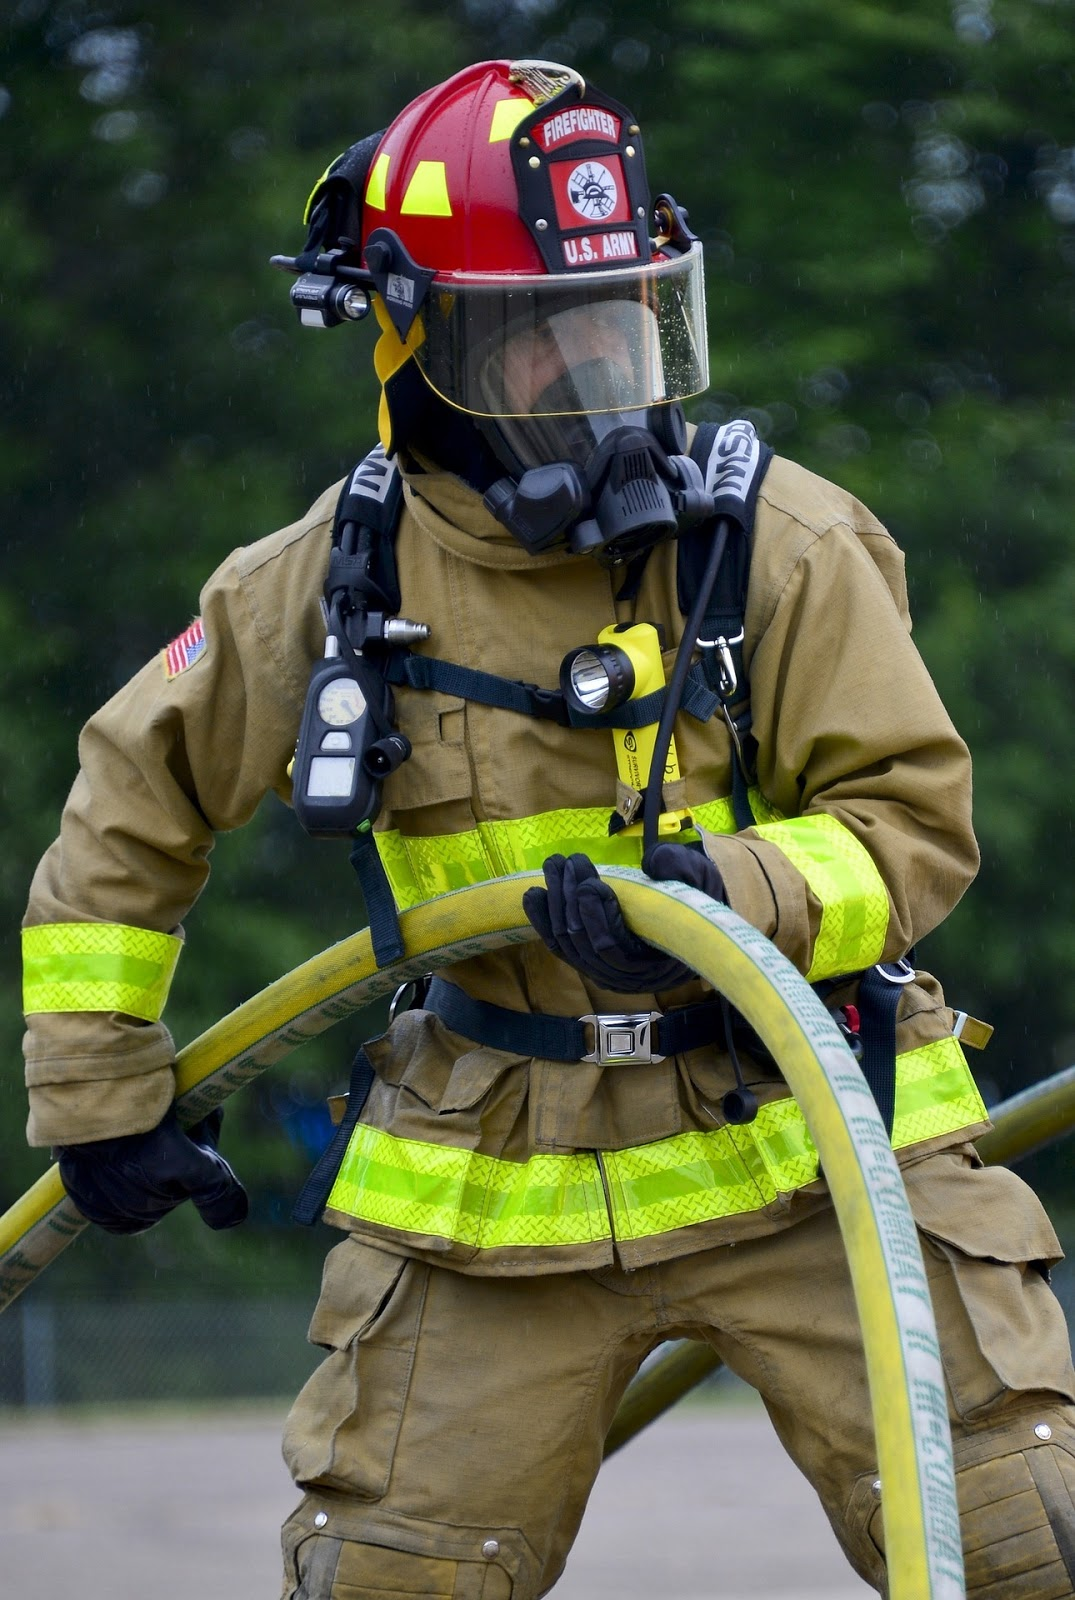 A Demonstration Of Fire-fighting Equipment Editorial Image ...  |Fire Figher Demonstration